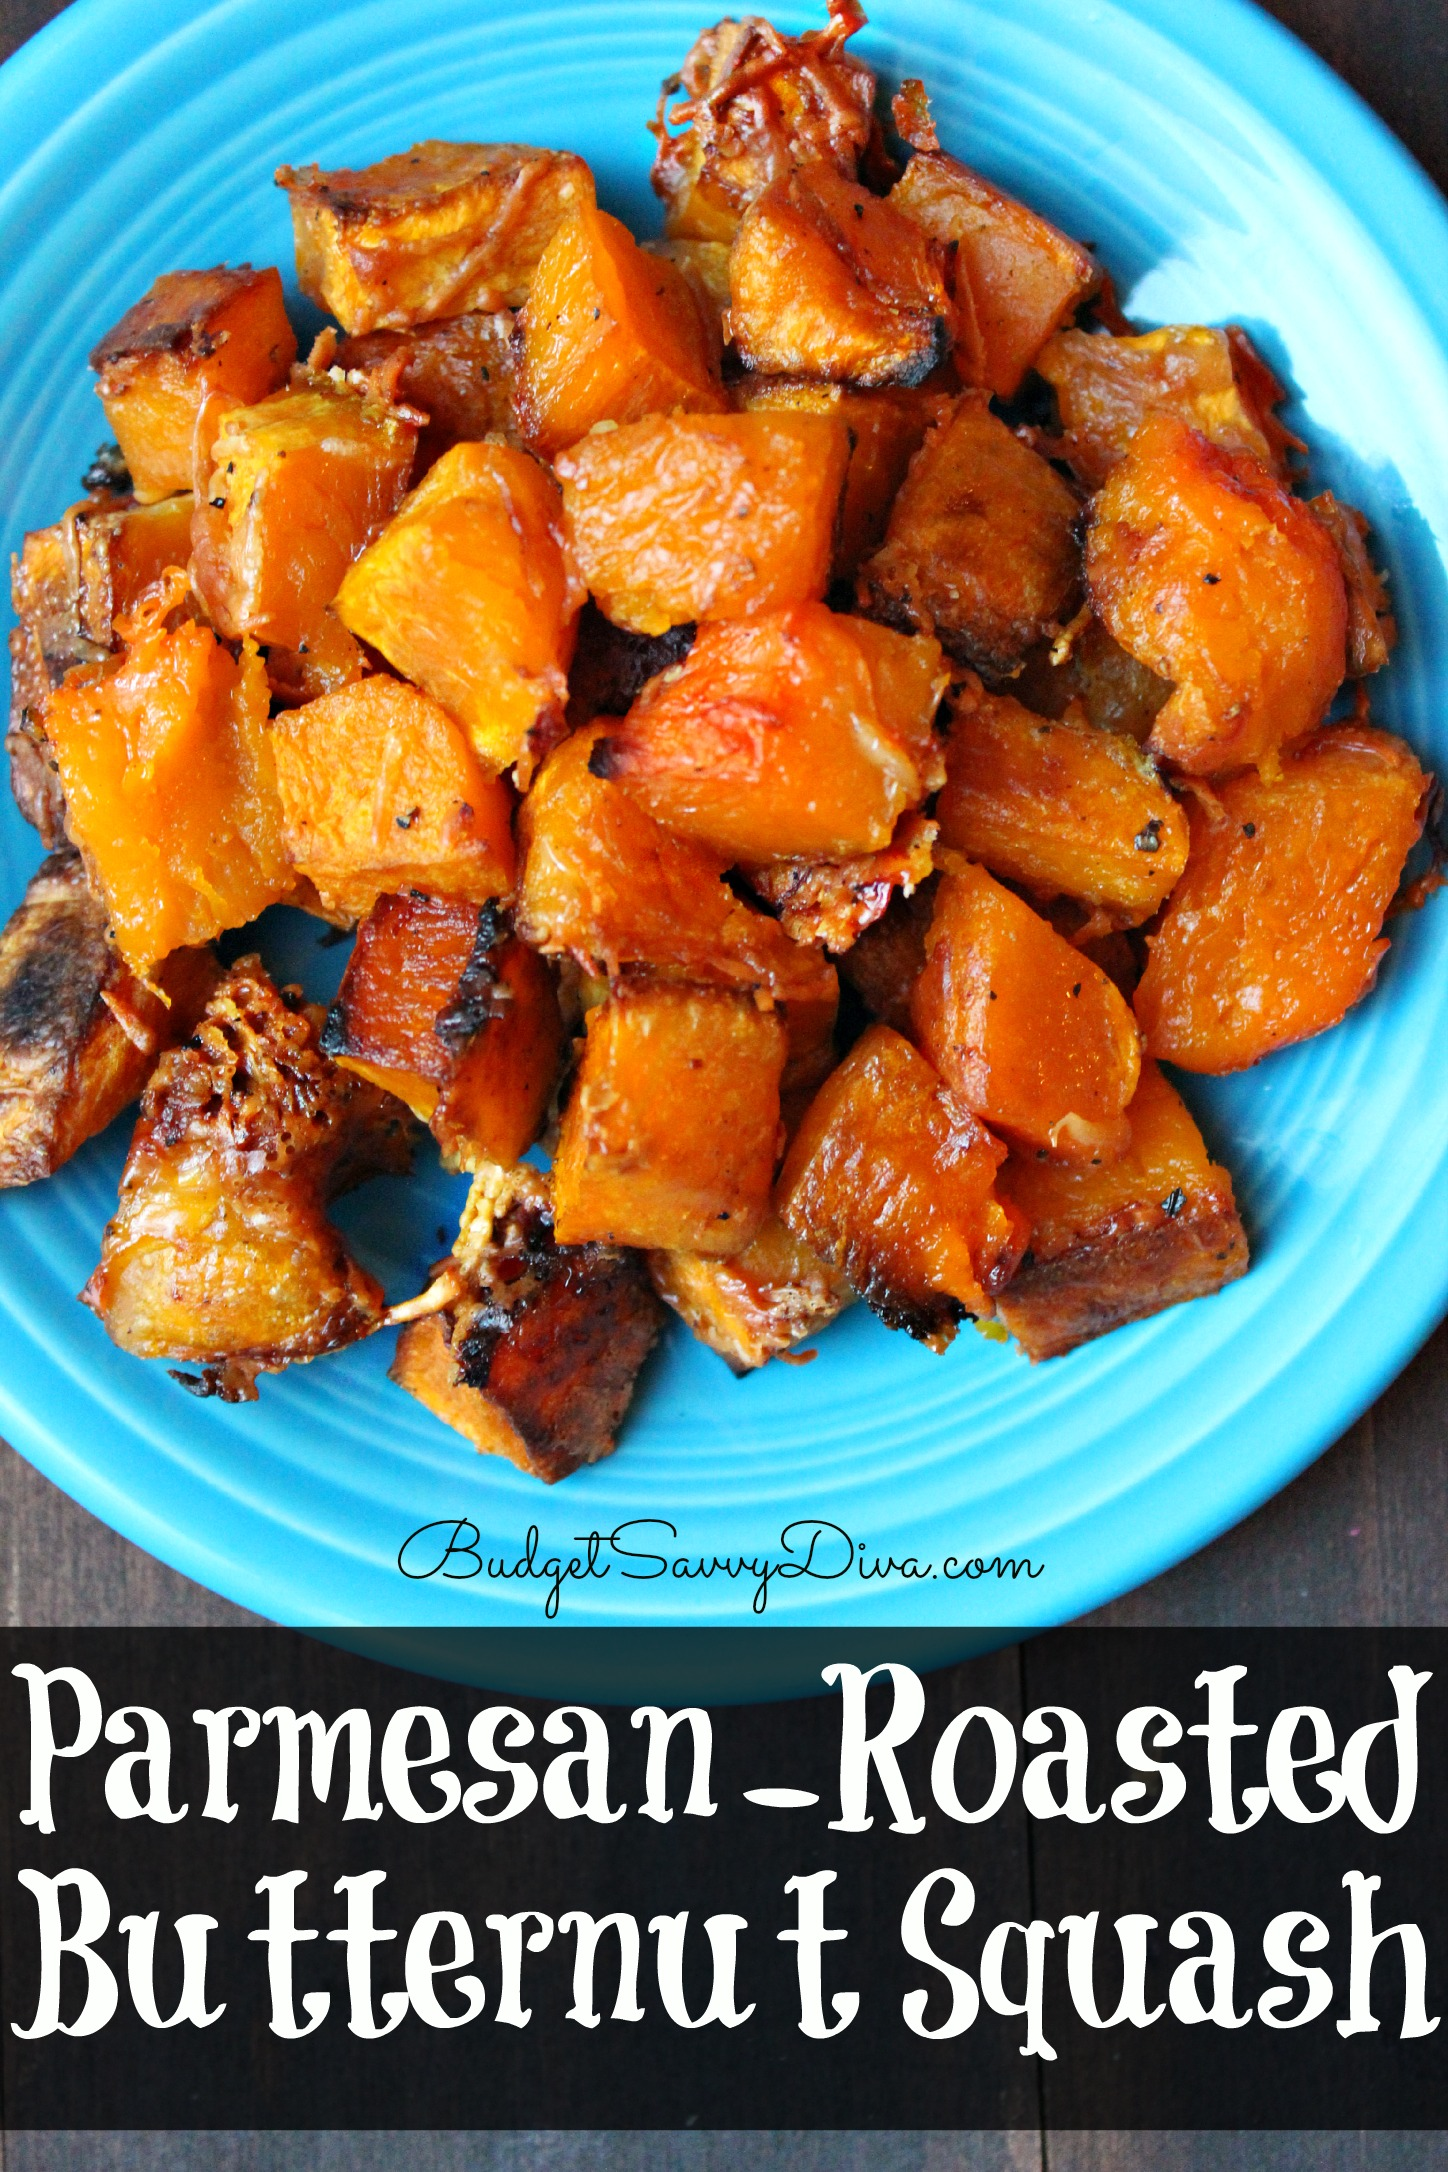 Parmesan – Roasted Butternut Squash Recipe | Budget Savvy Diva